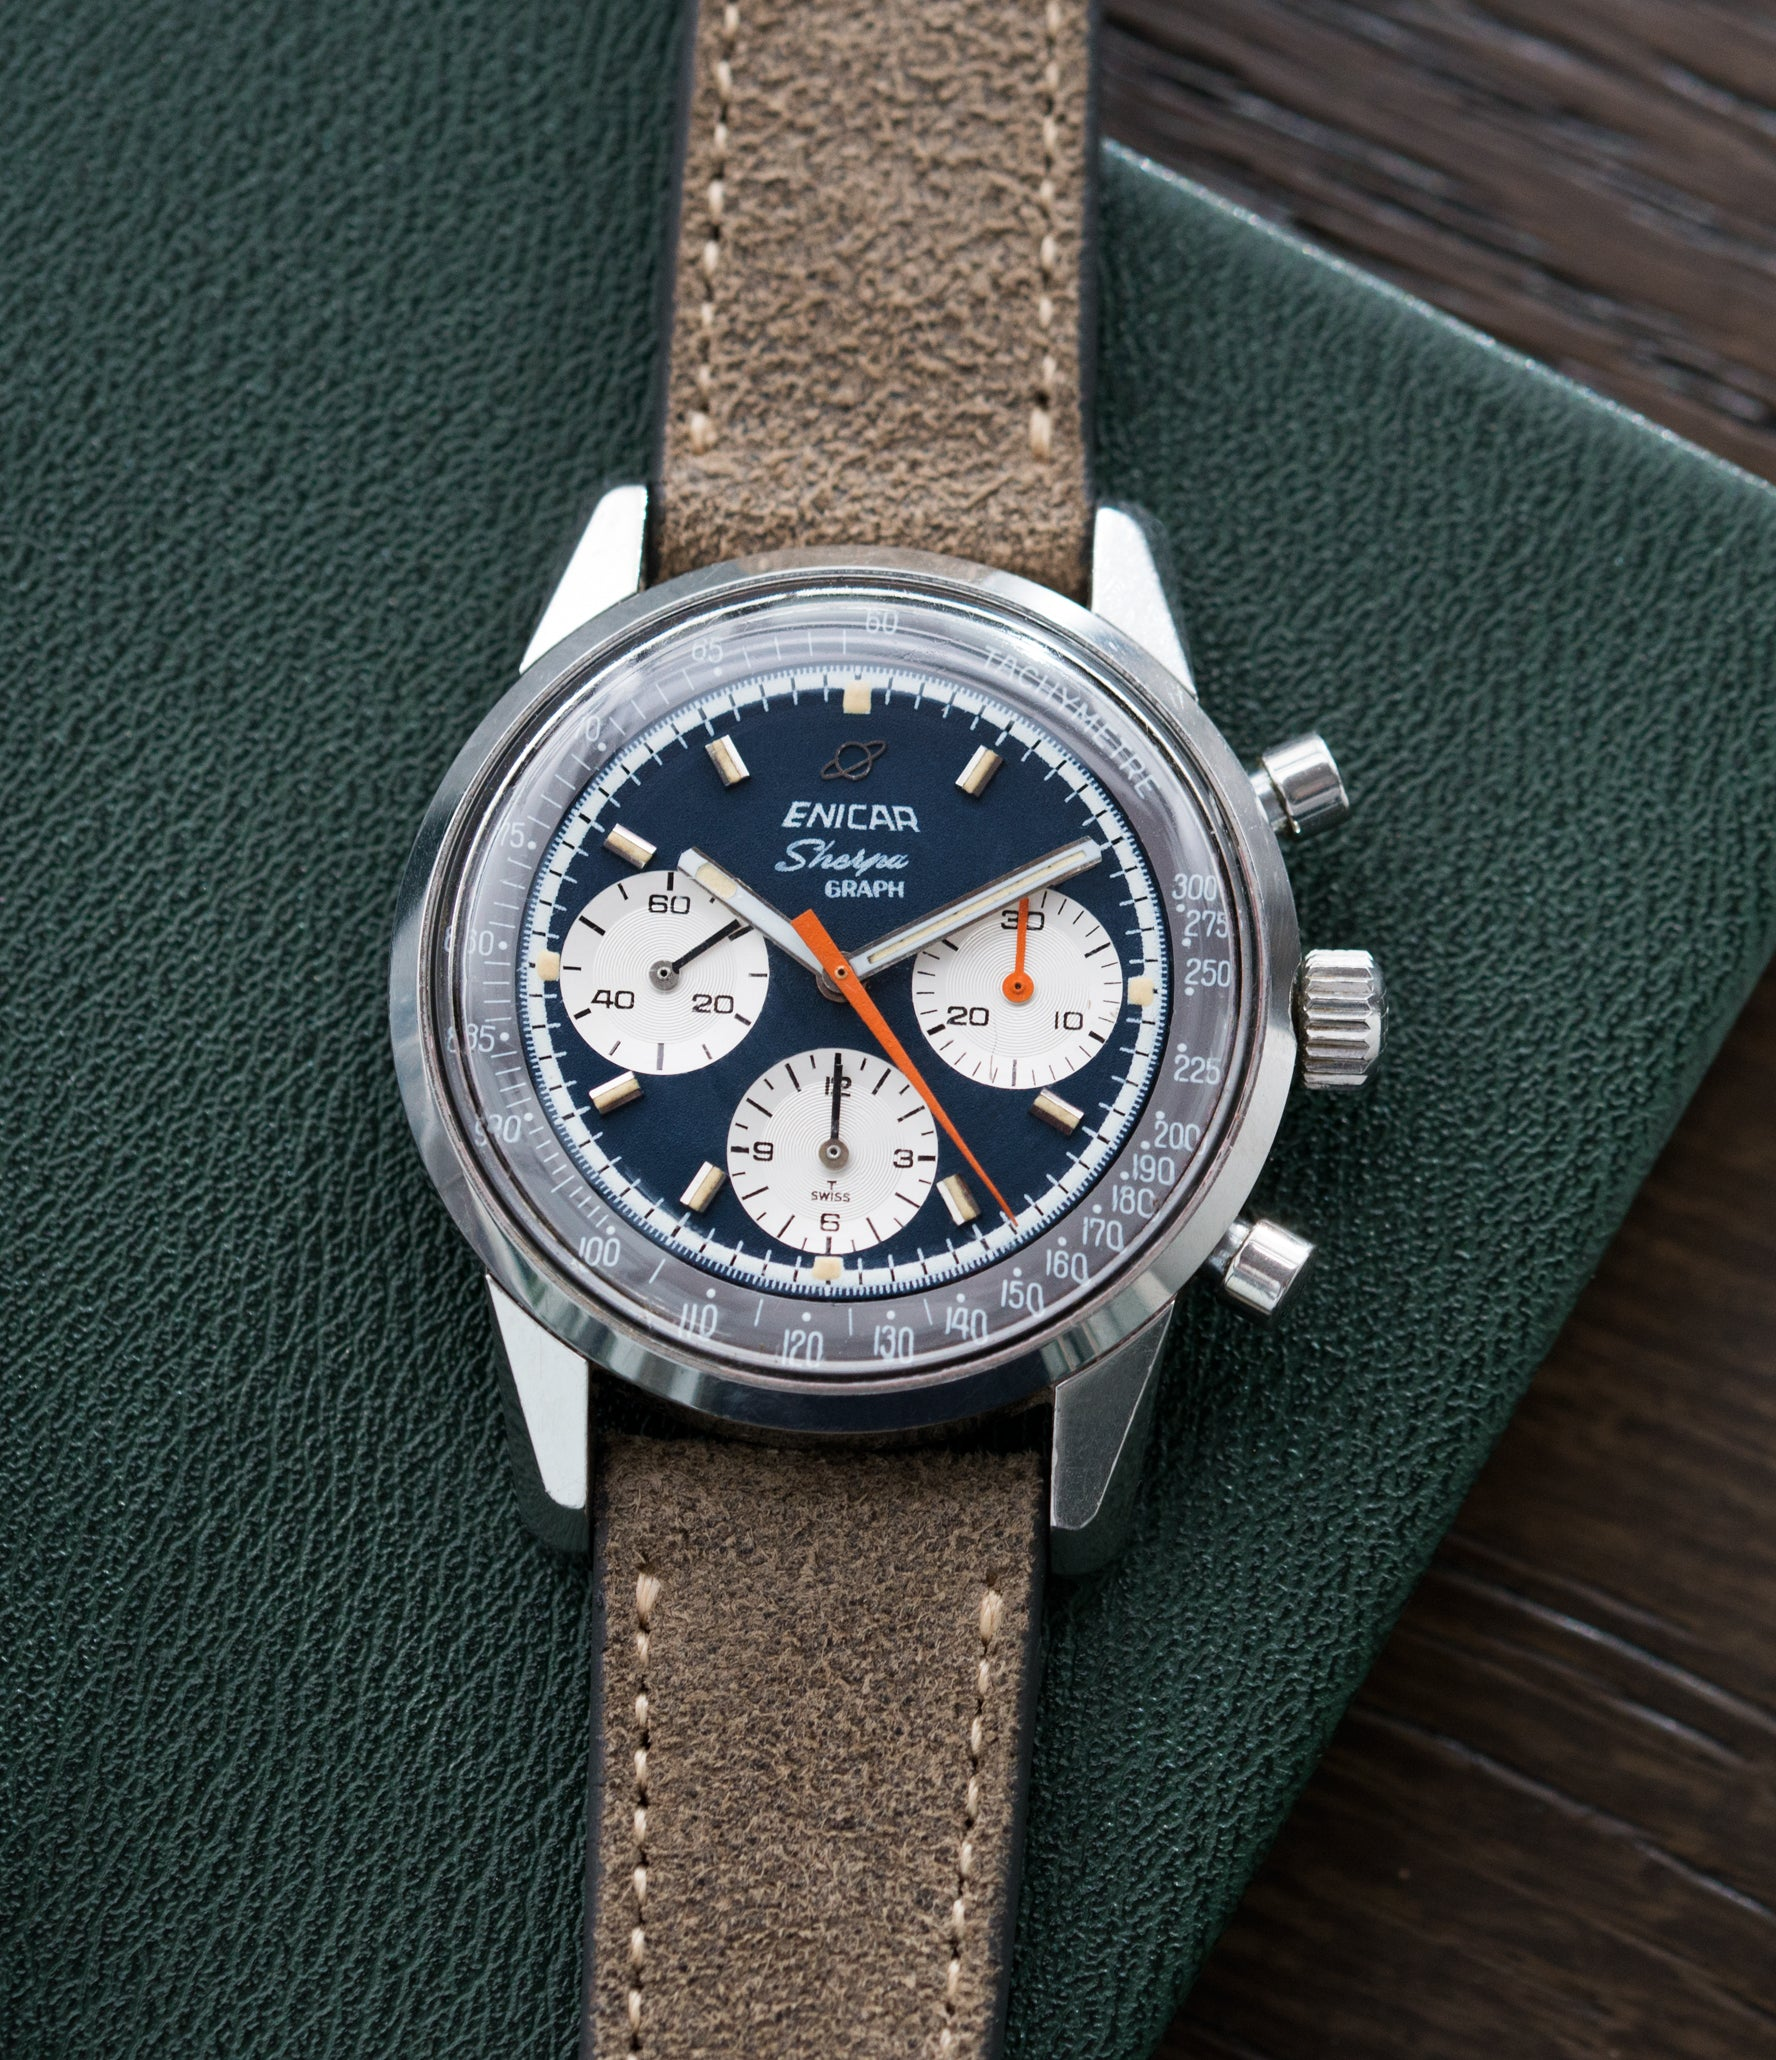 Jim Clark classic vintage sport watch Enicar Sherpa Graph 300 Ref. 072-02-01 steel chronograph sport racing watch for sale online at A Collected Man London UK vintage watch specialist